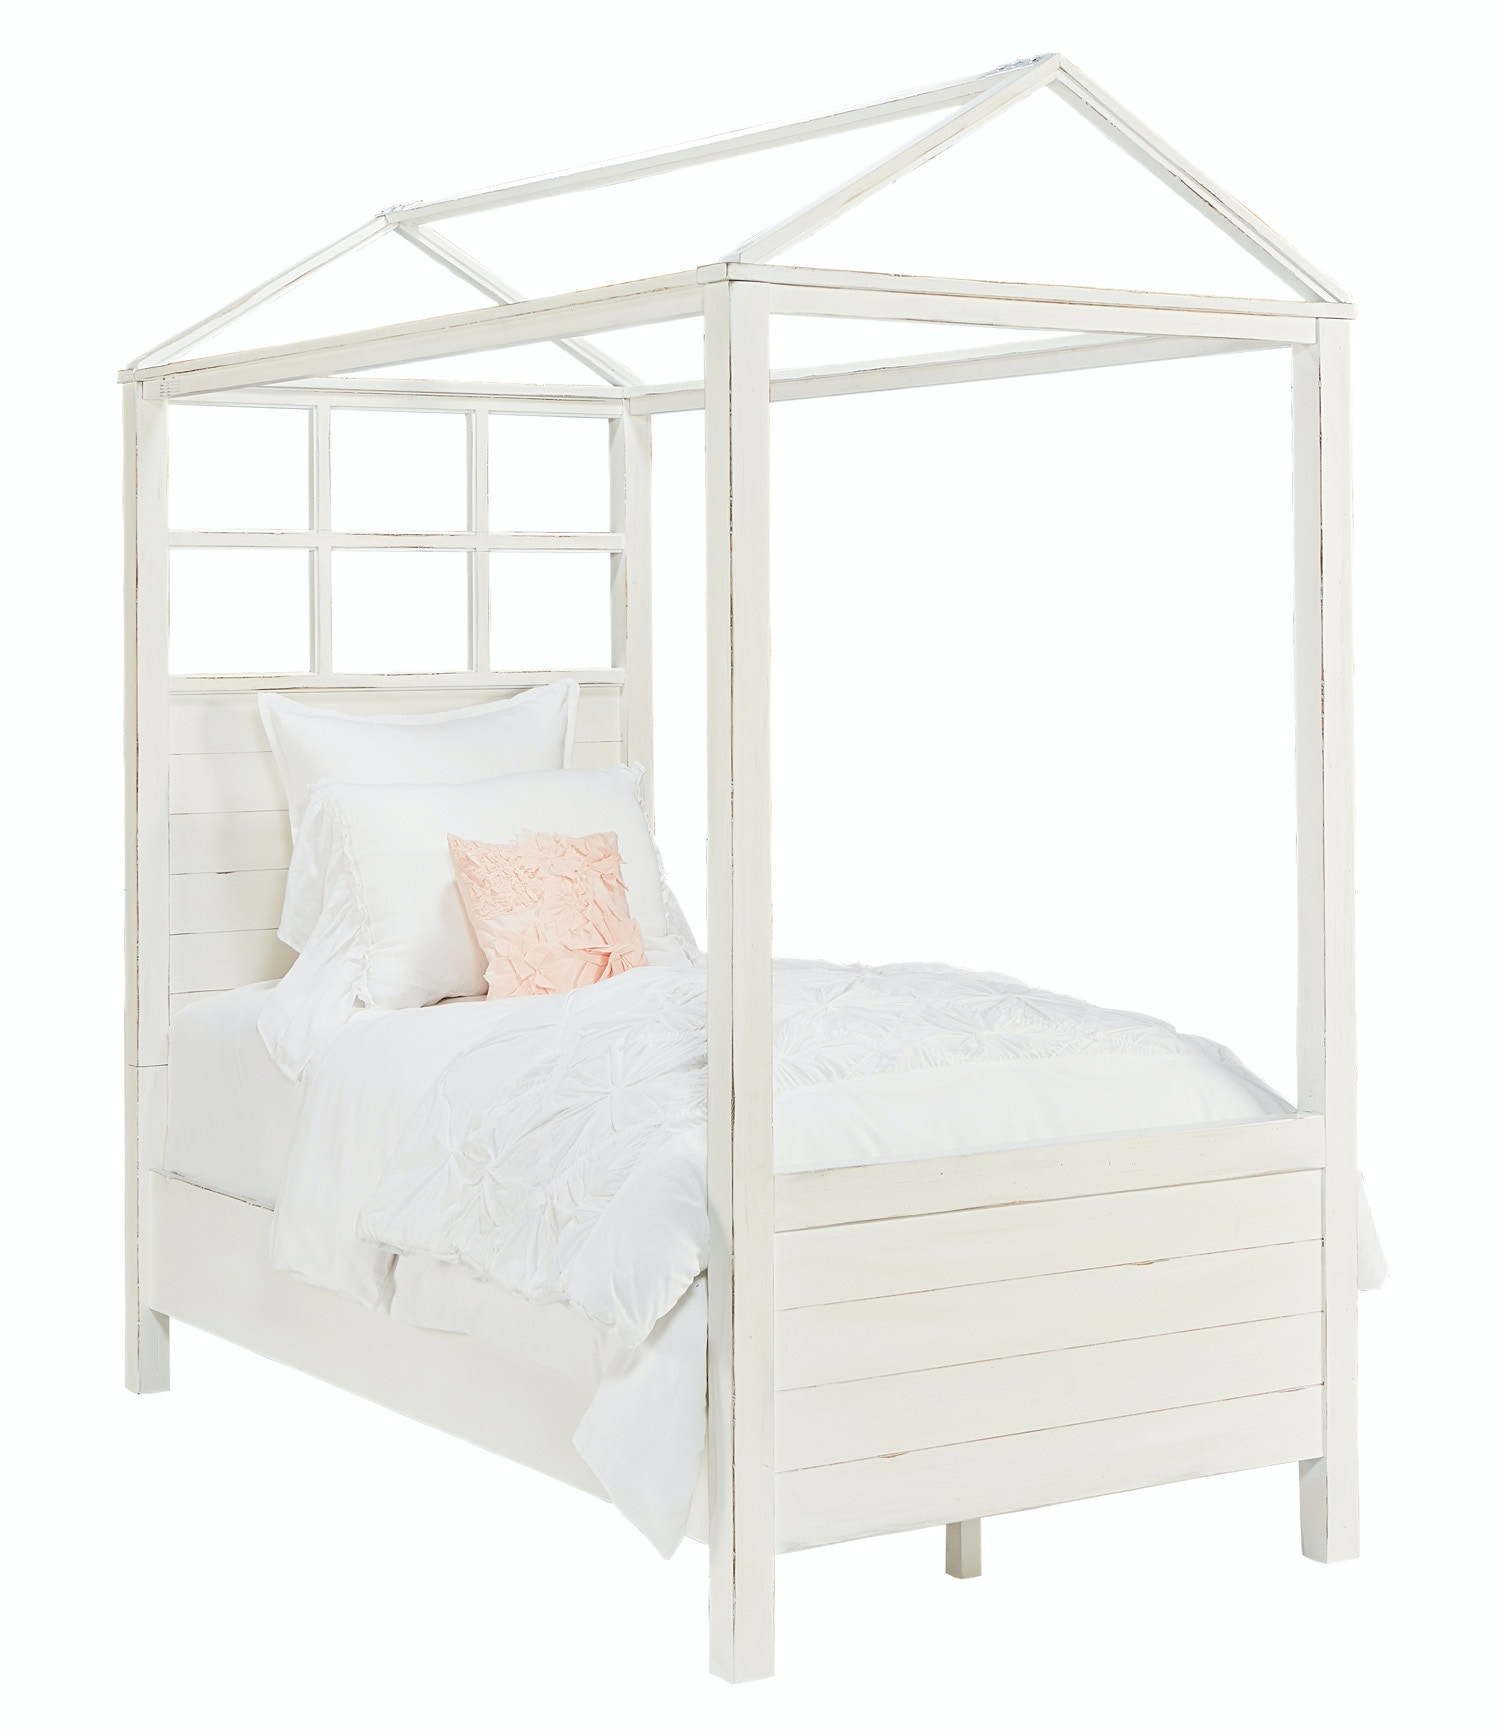 Playhouse Canopy Bed White - Full  sc 1 st  Furniture Fair & Magnolia Home Youth Playhouse Canopy Bed White - Twin 058272 ...